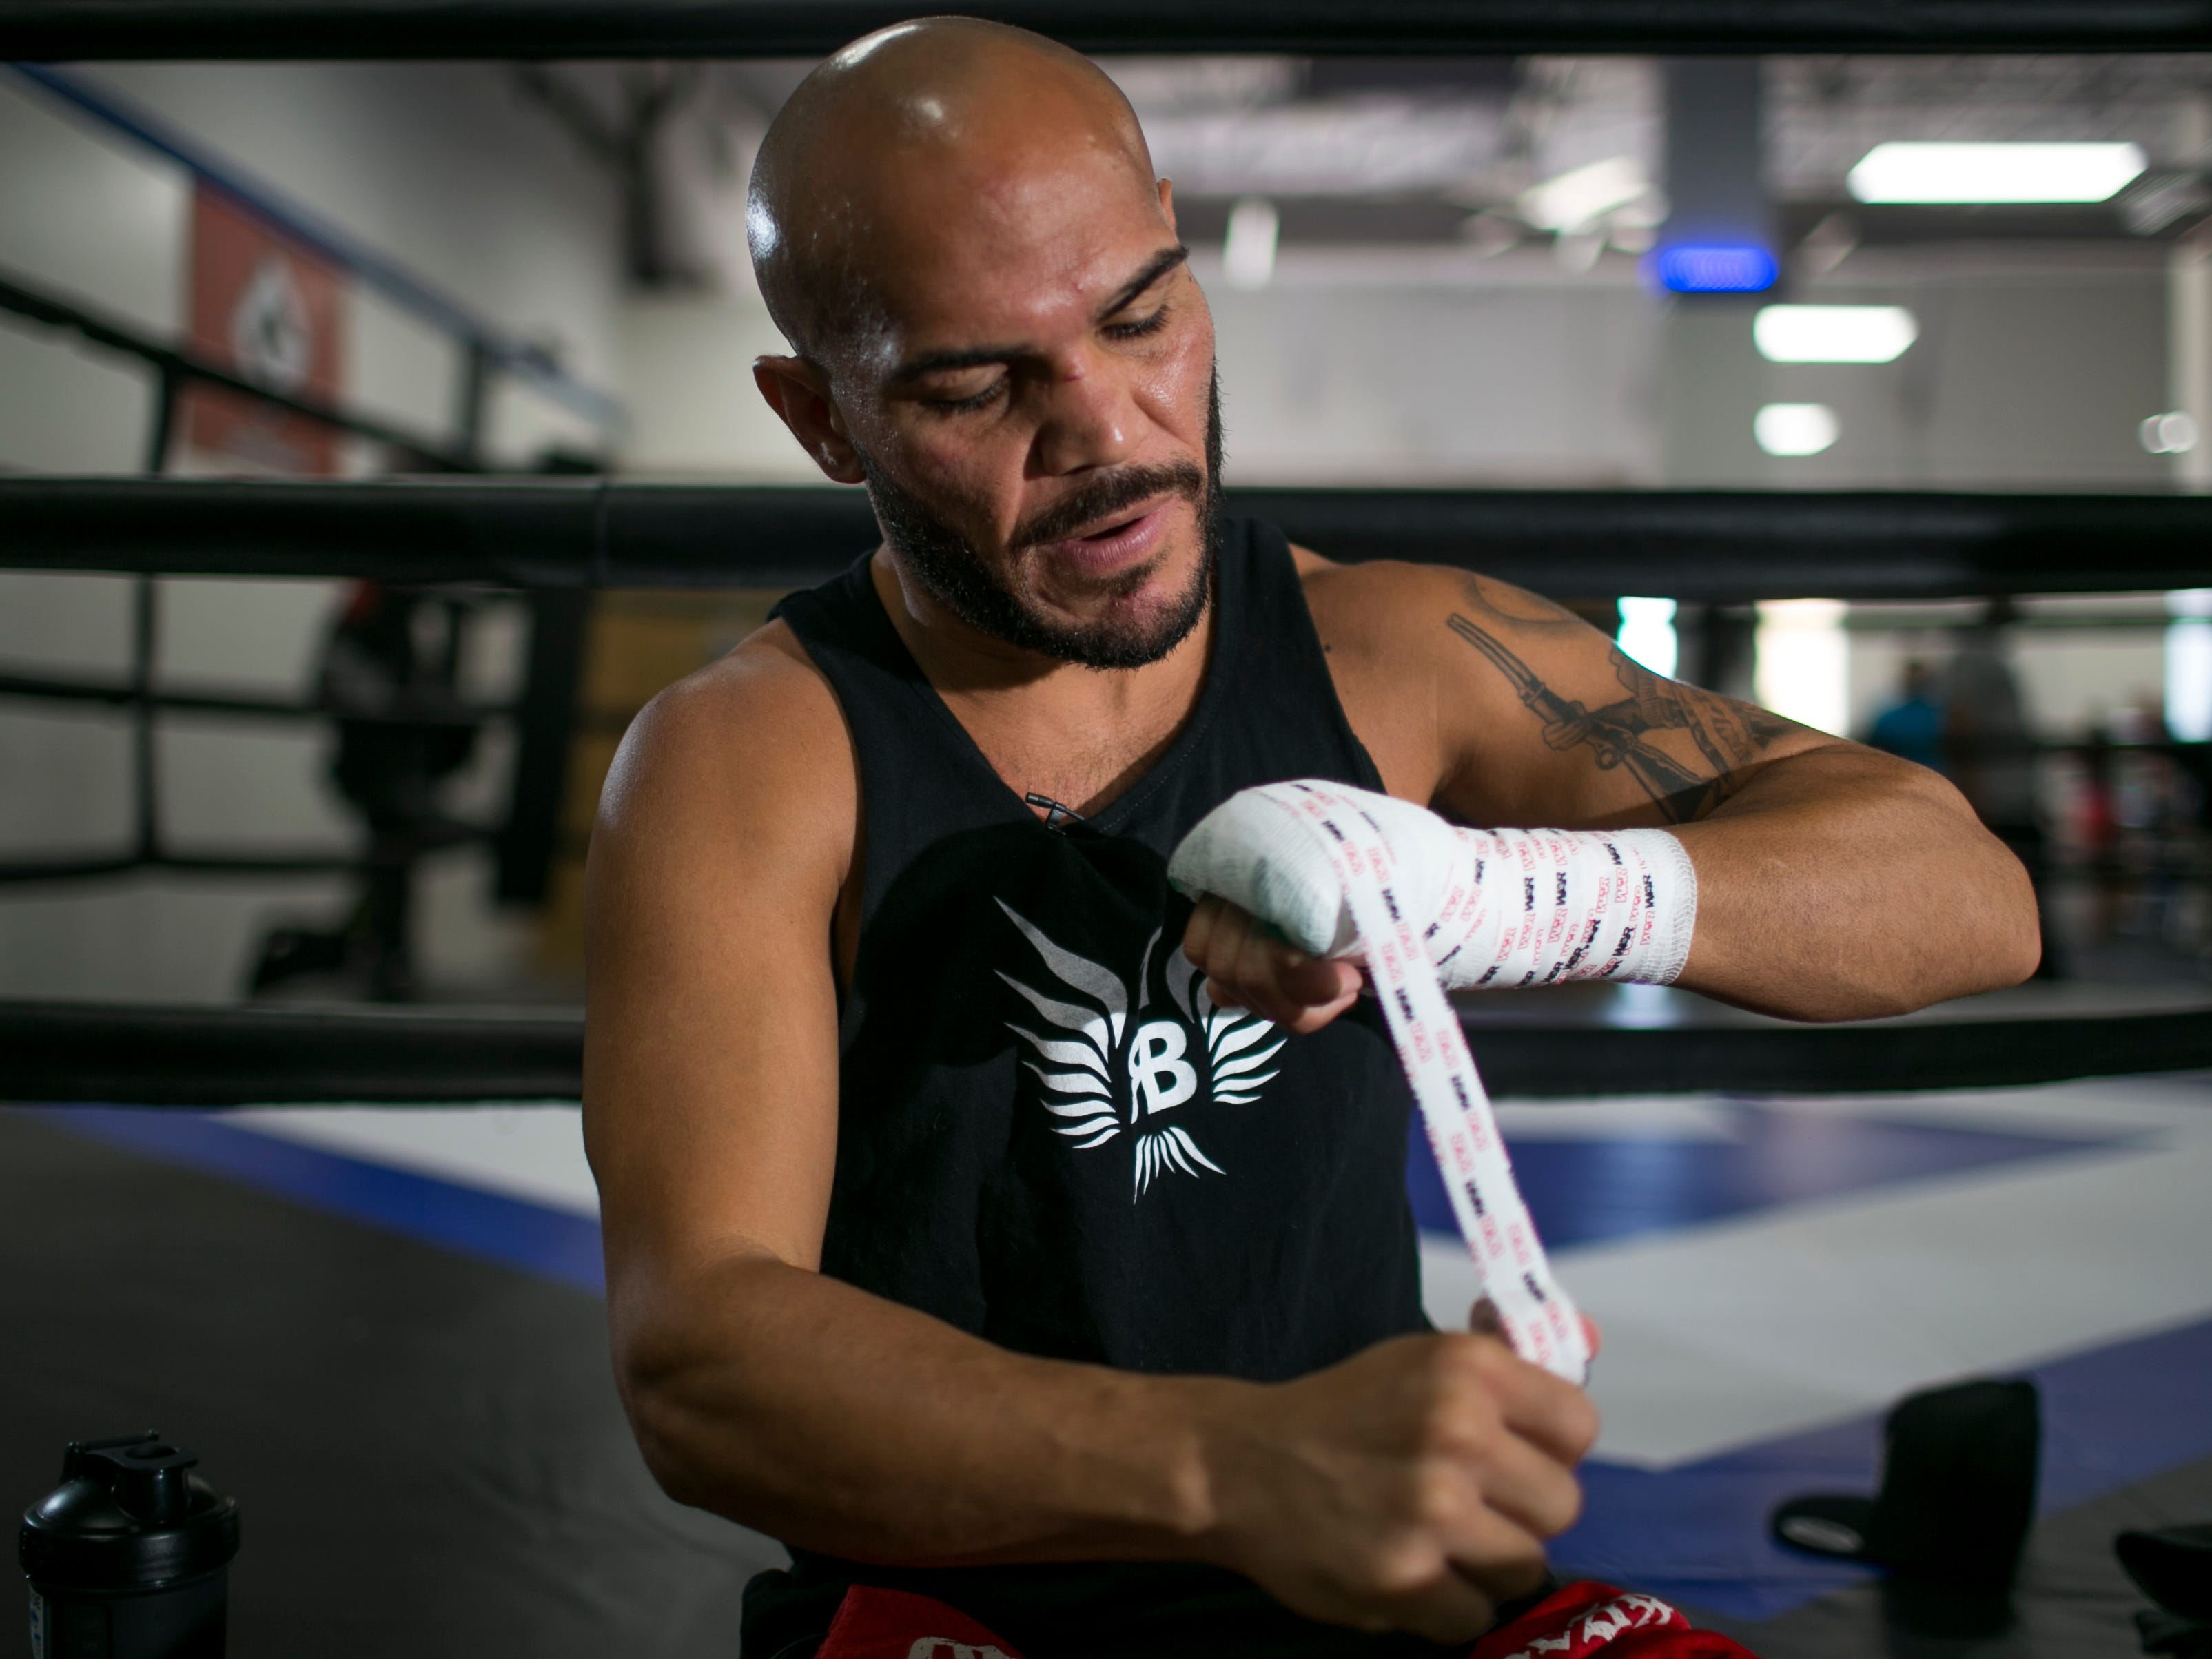 Ray Beltran, the World Boxing Organization World Lightweight champion, puts tape on his hands before sparring at Gent's Boxing Club in Glendale on Aug 4, 2018.